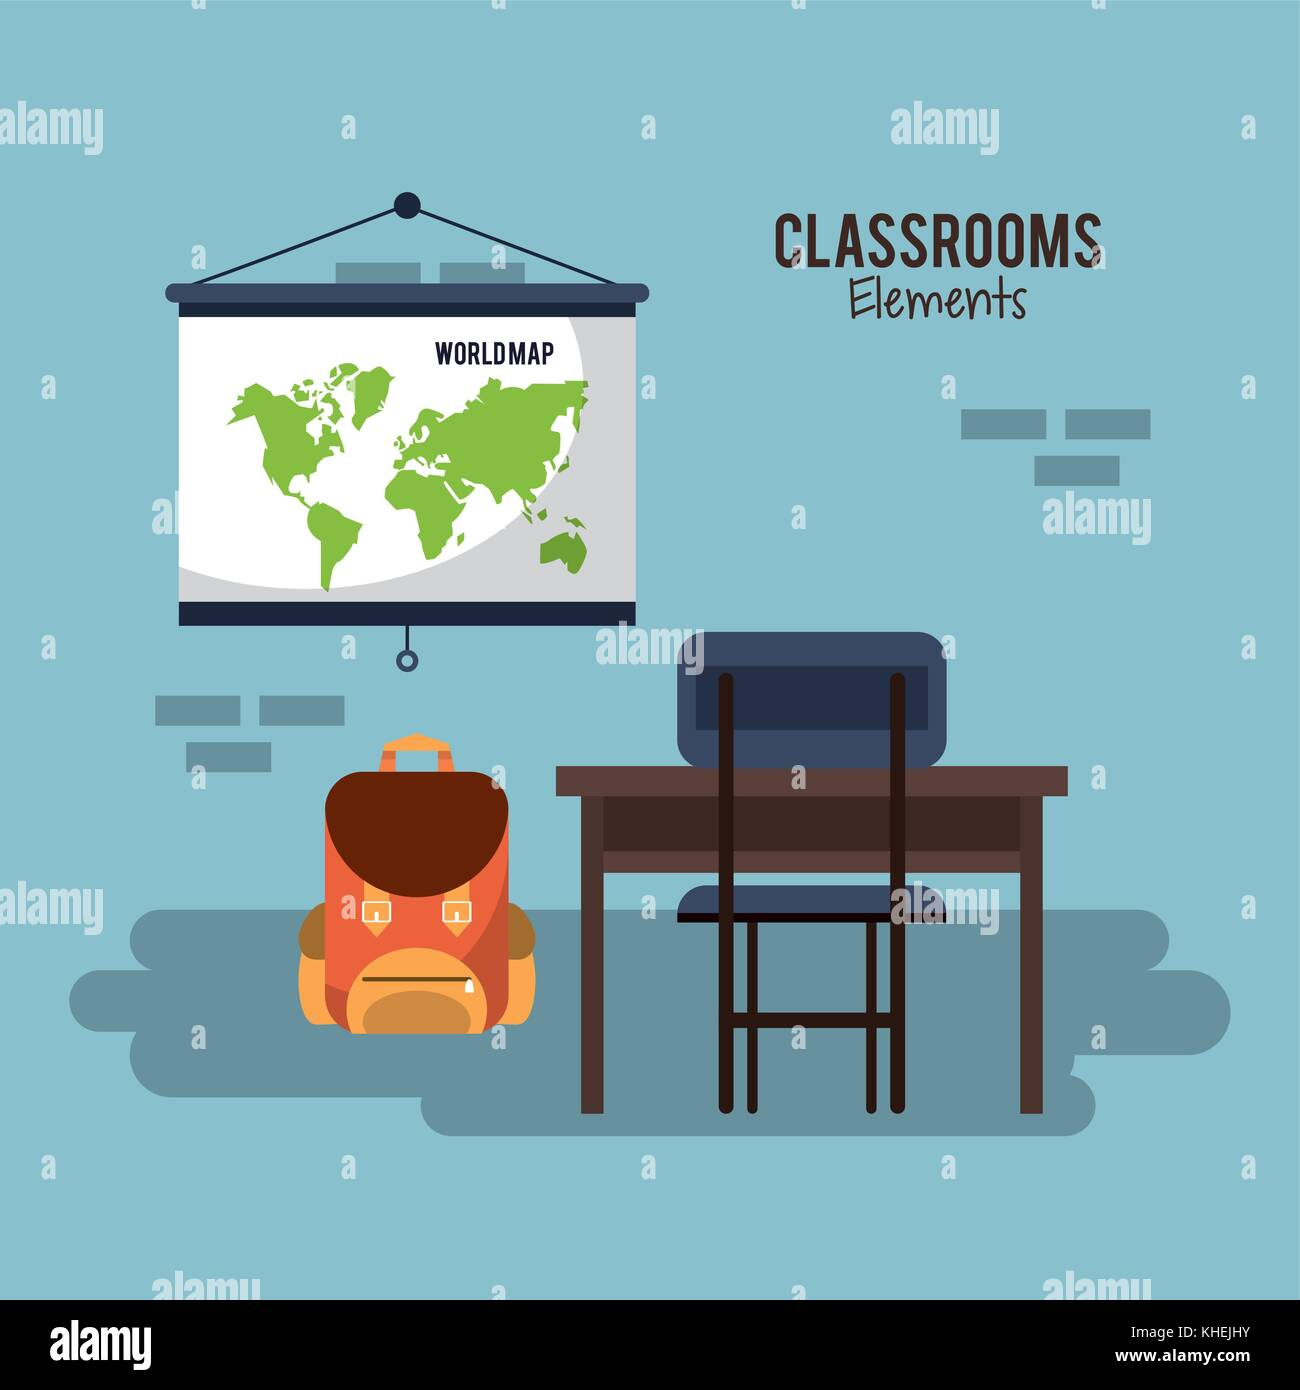 Classroom Design Elements ~ Illustration maps stock photos